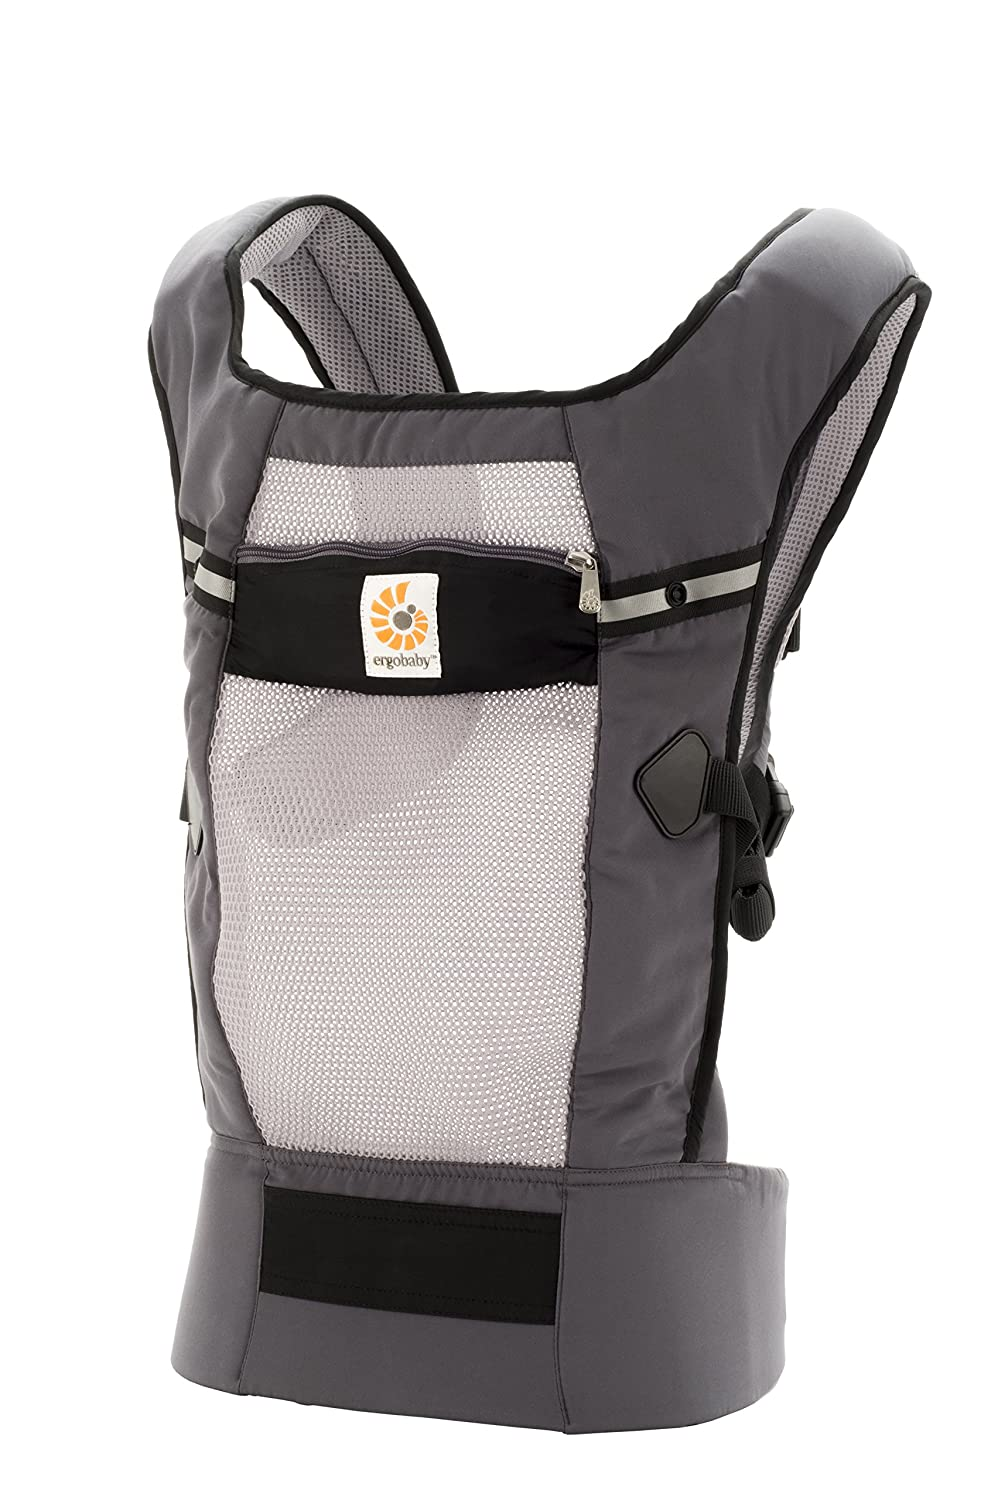 Ergobaby Original Cool Air Mesh Performance Ergonomic Multi-Position Baby Carrier with X-Large Storage Pocket, Graphite